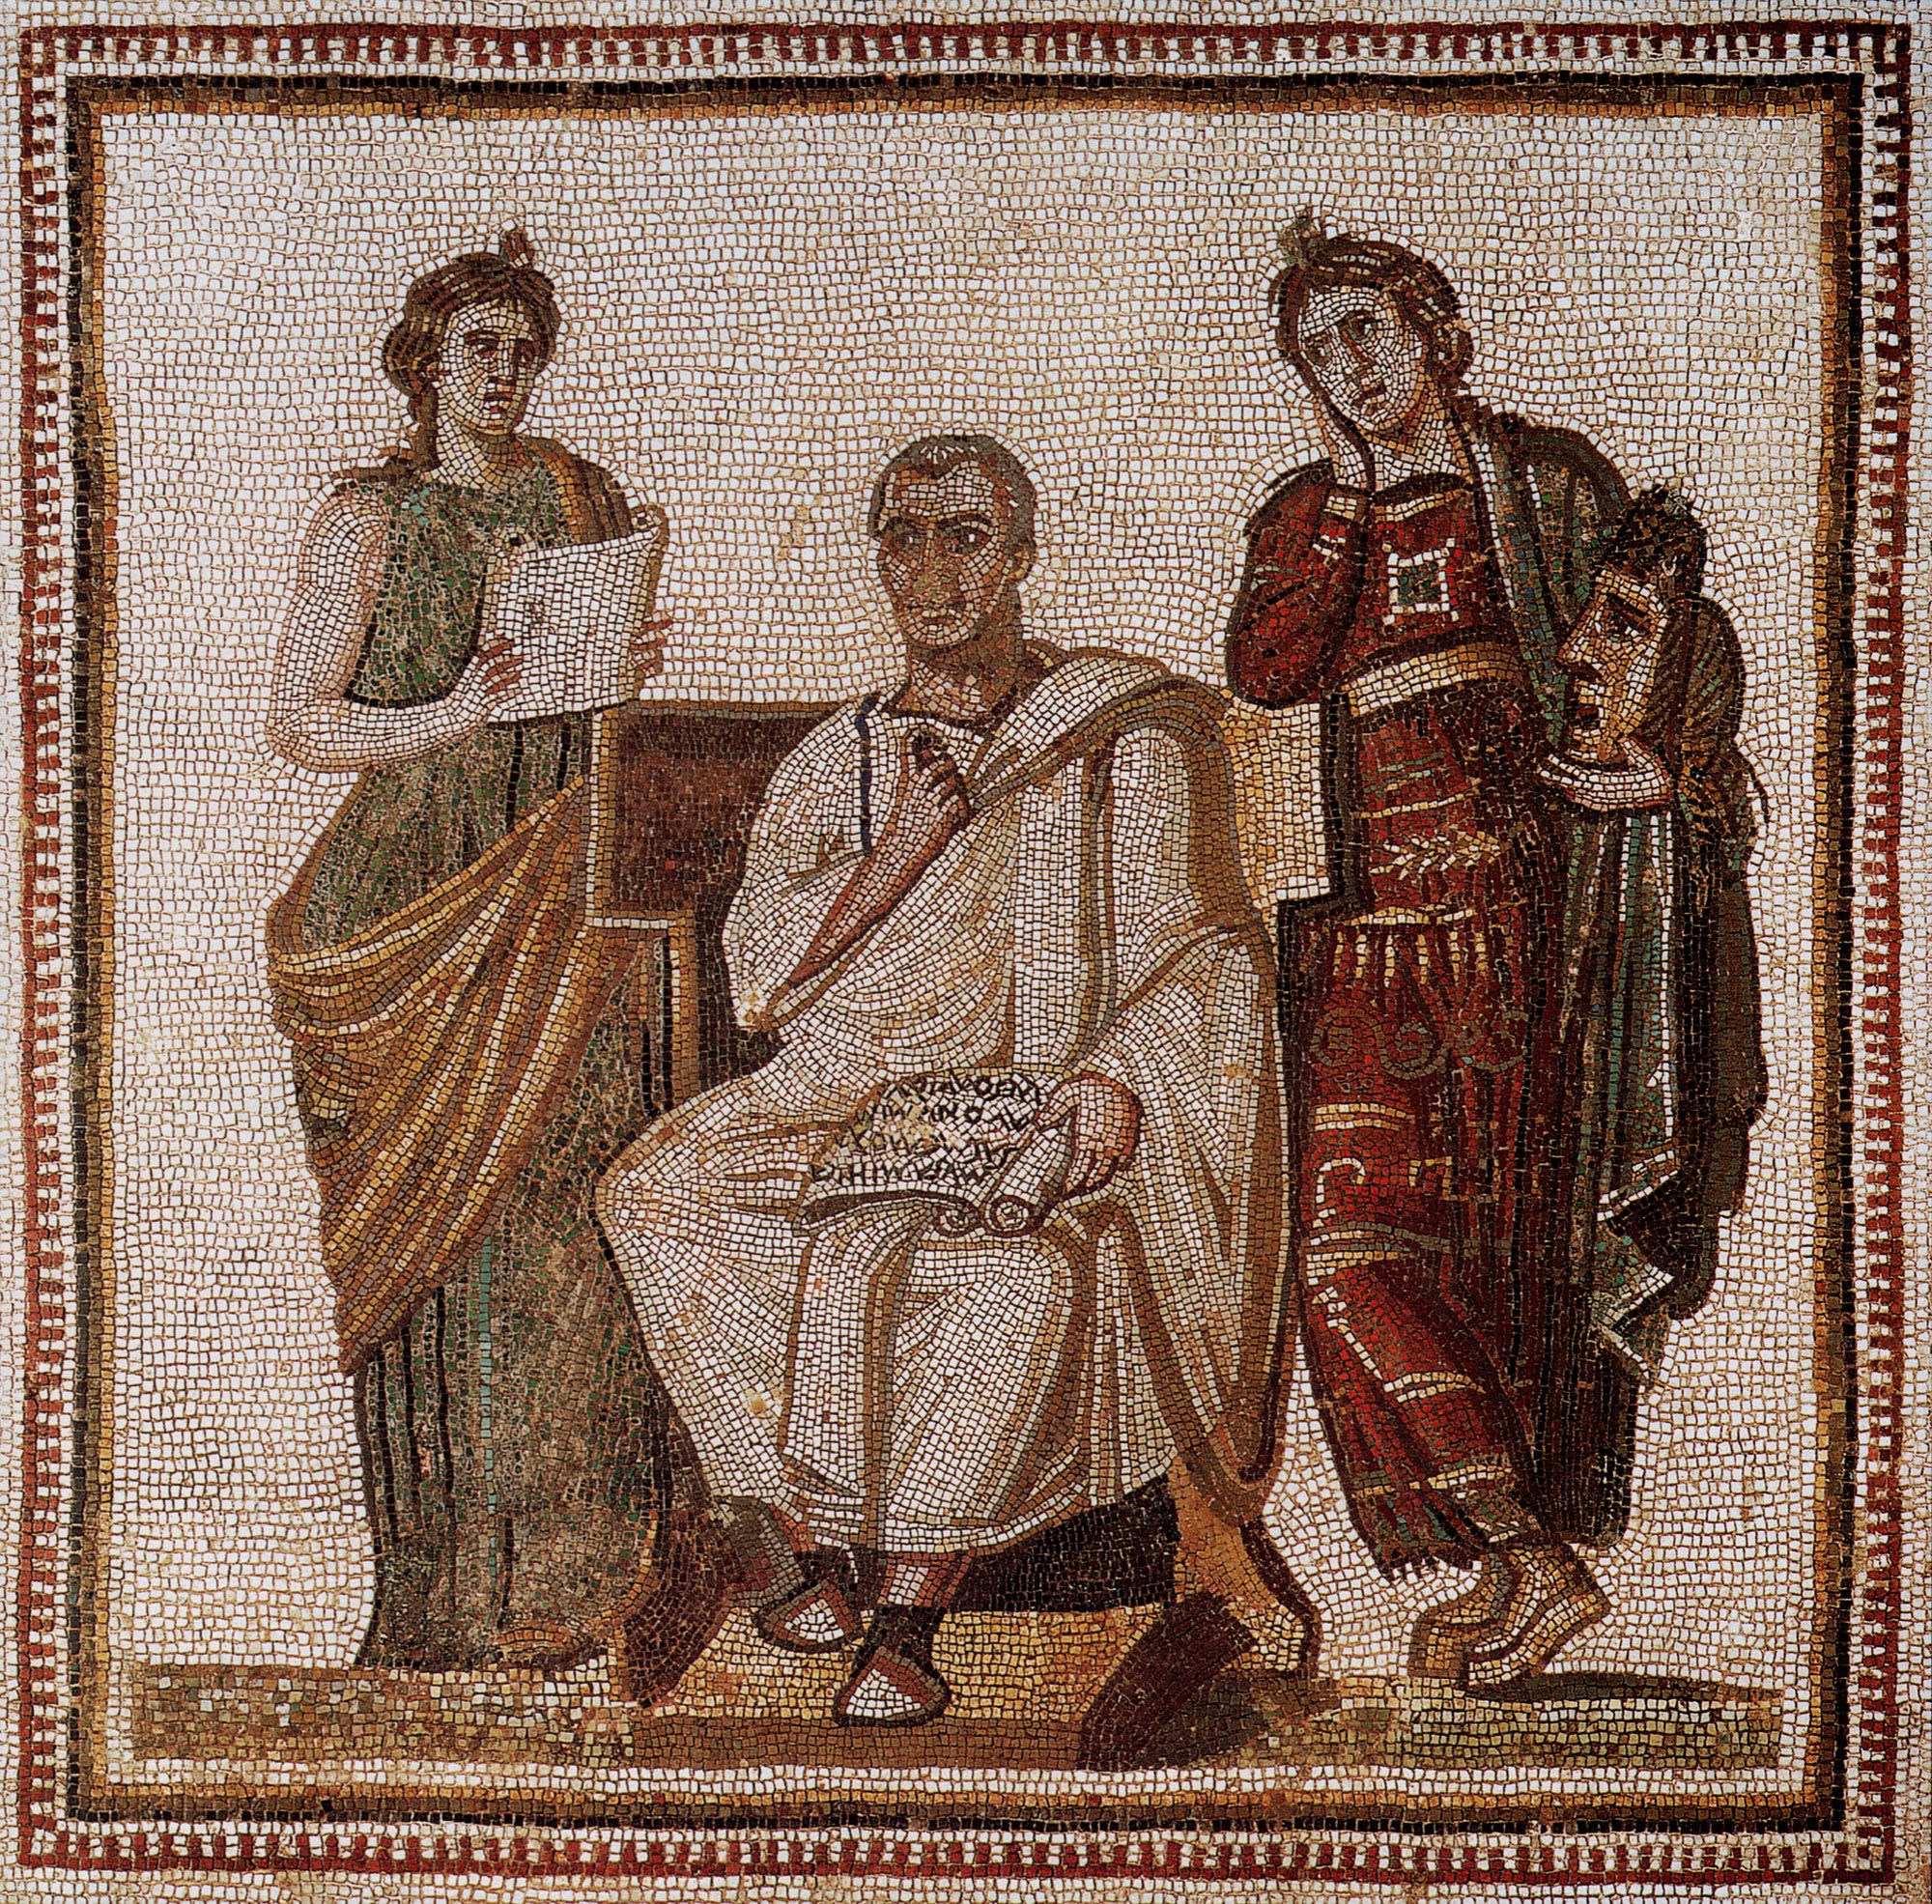 """Vergil holding the scroll with text of """"Aeneid"""" seated between the muses of history (Clio) and tragedy (Melpomene).  Mosaic. 3rd century. 123 × 122 cm. Tunis, The National Museum of Bardo. Origin:The """"maison de l'Arsenal"""" or """"maison de Virgile"""" in Sousse, Tunisia (ancient Hadrumetum in the province Byzacena). Discovered in 1896 by French soldiers excavating for an arsenal. The scroll in Virgil's hand reads, """"Musa, mihi causas memora,"""" from the first lines of the Aeneid."""